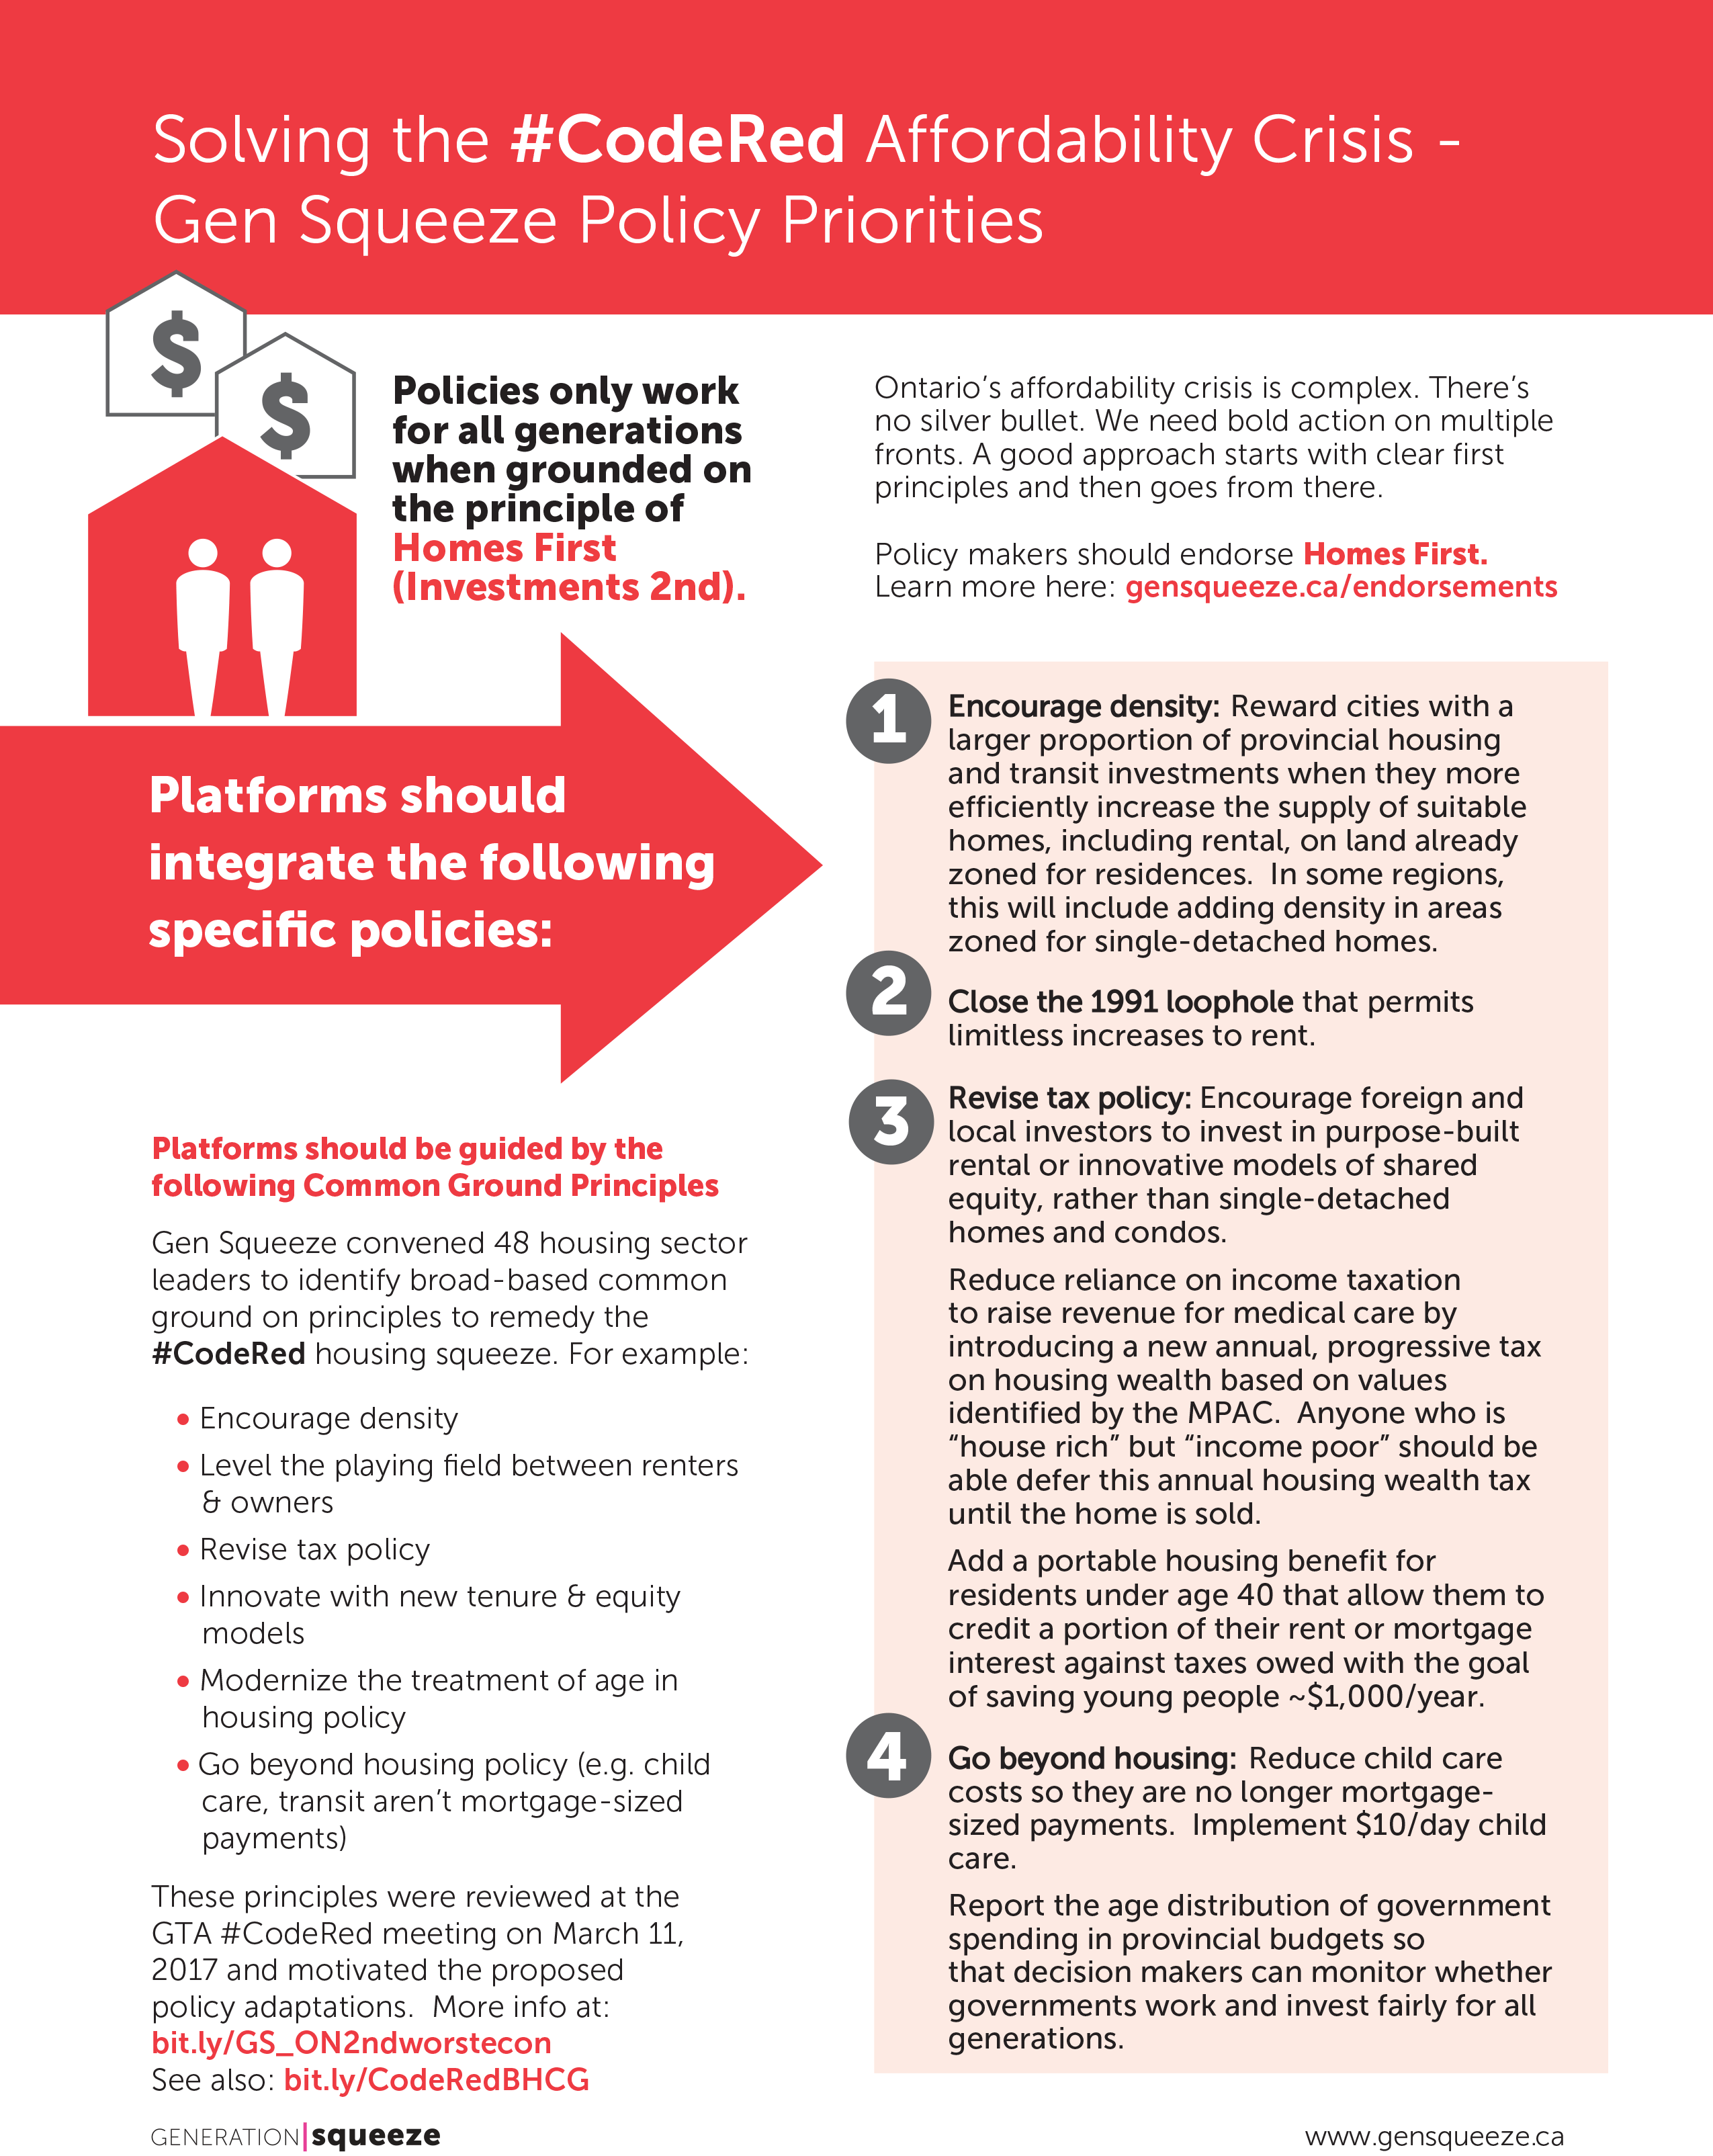 GS_Code_red_policy_summary_Ont.png